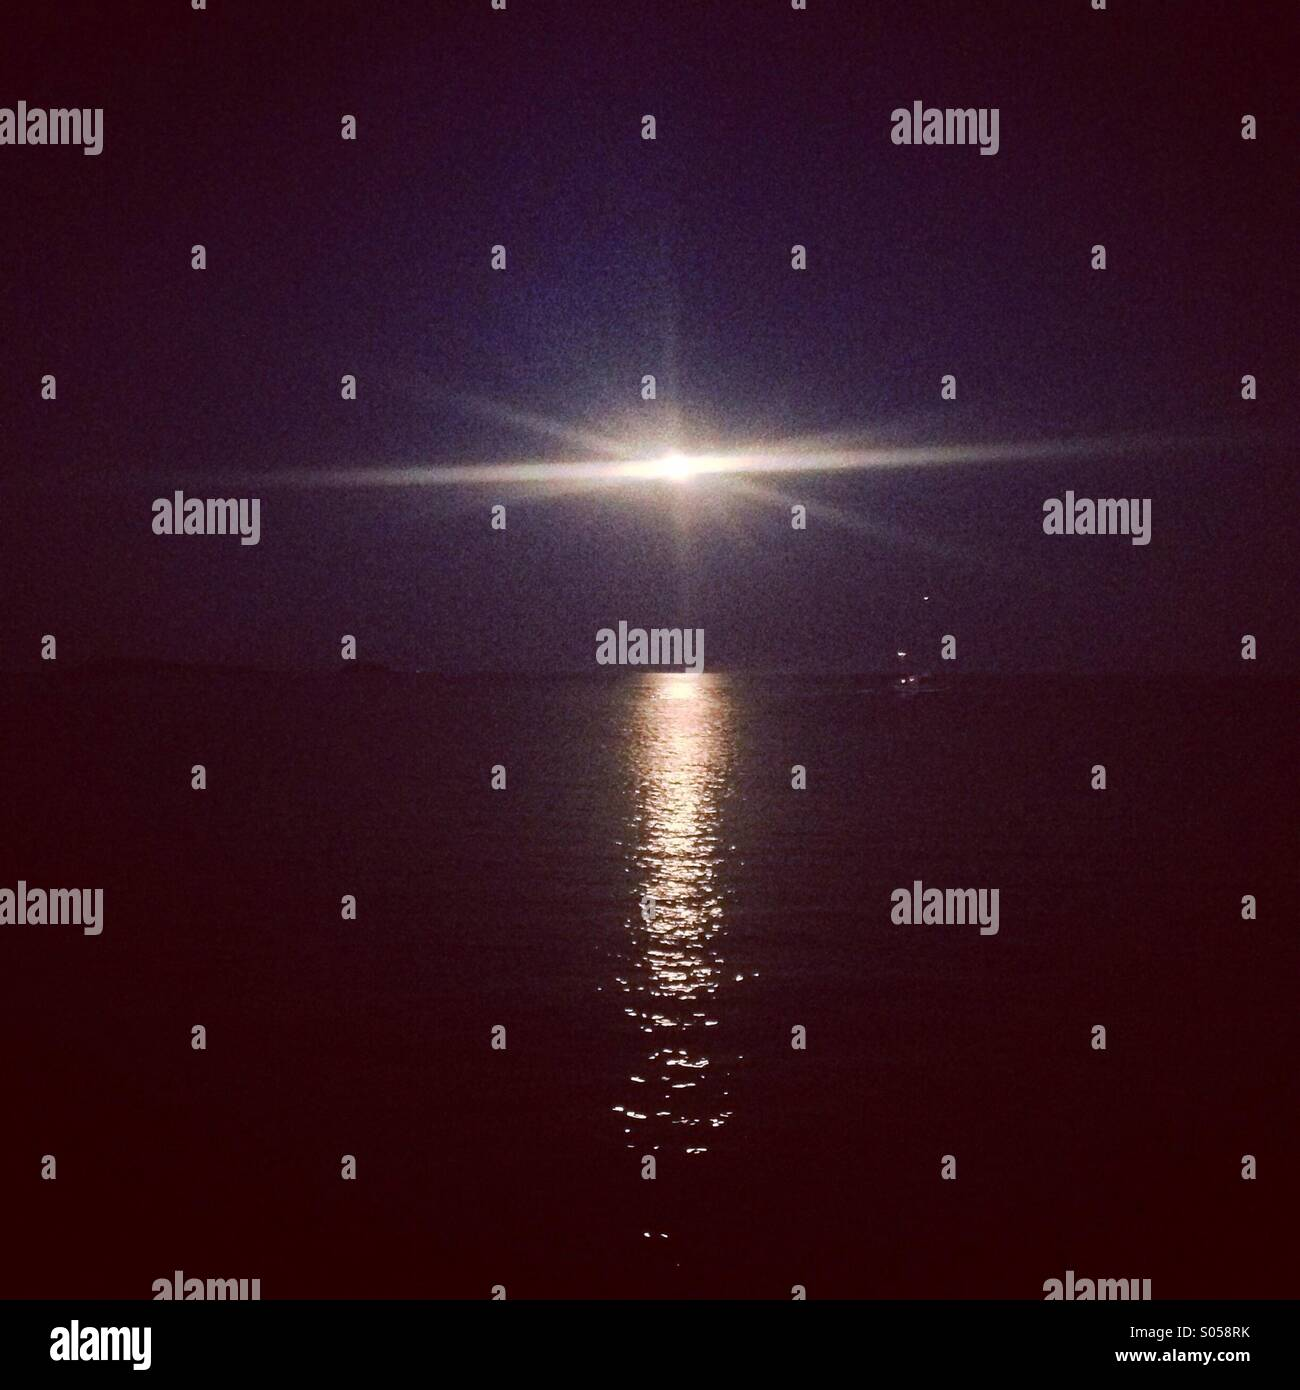 The moon at night time reflecting onto a dark sea - Stock Image